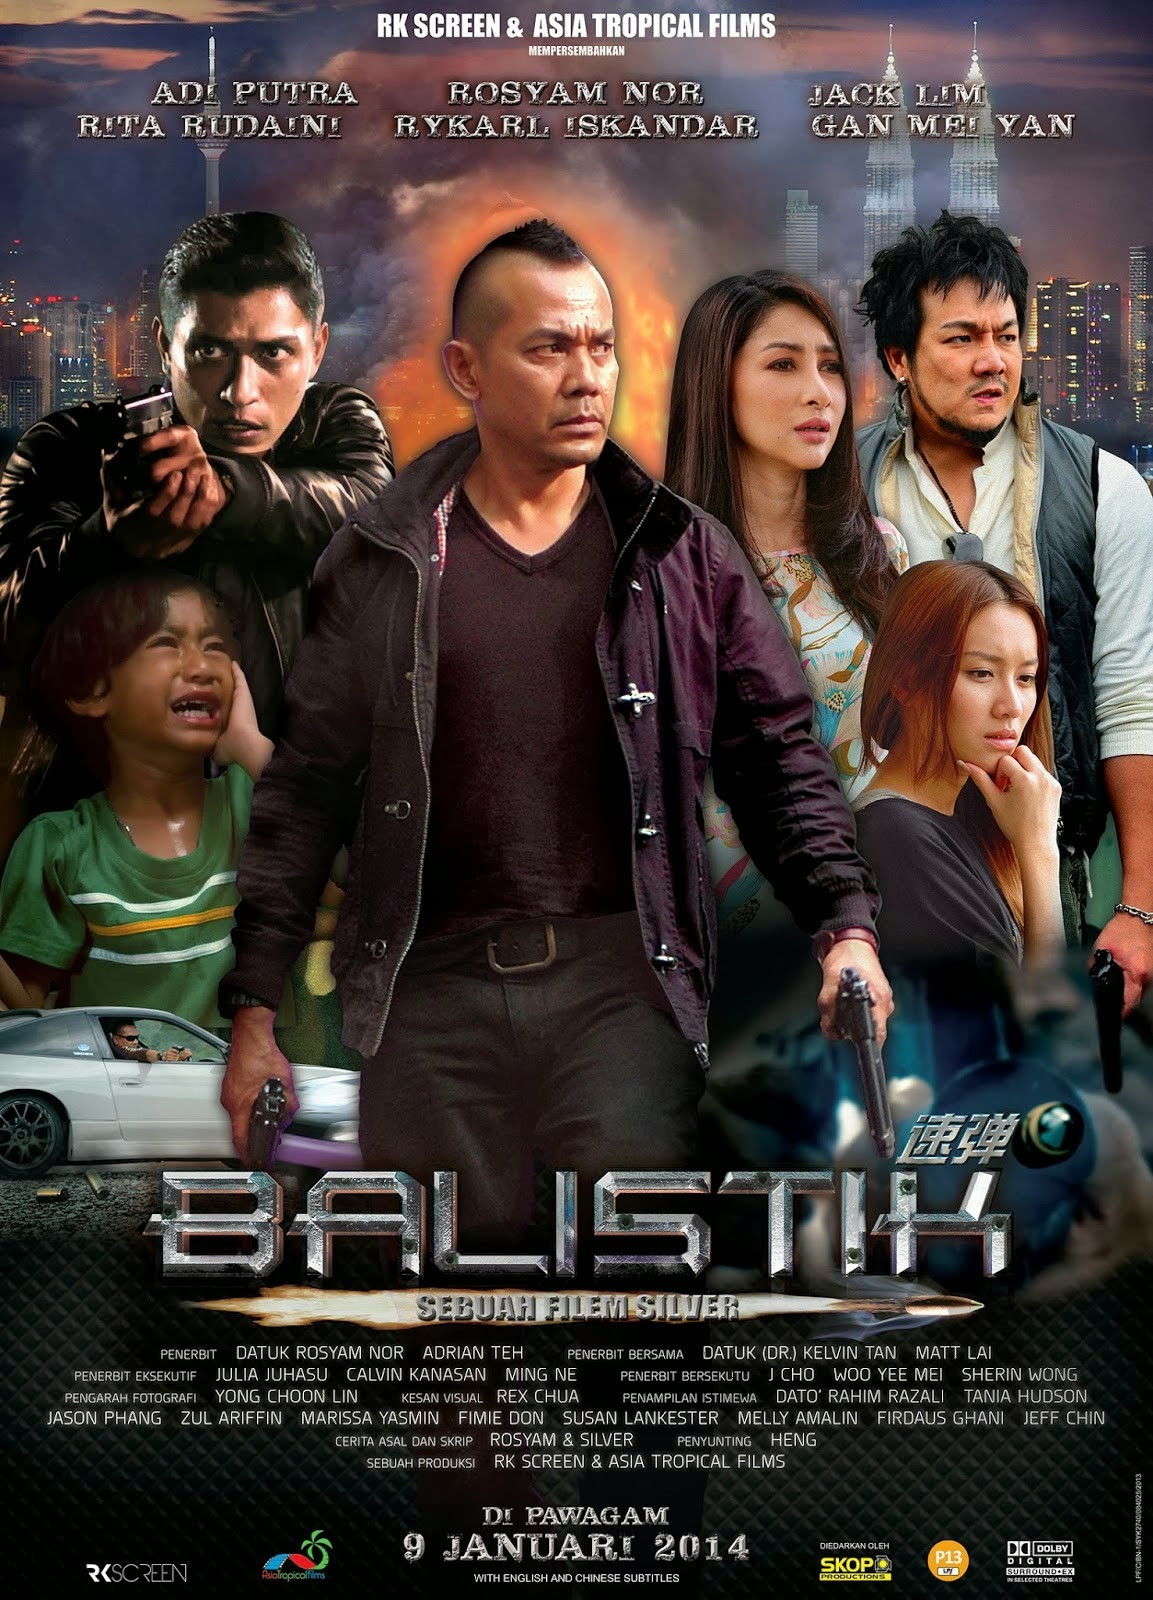 Tonton Filem Balistik Full Movie Streaming